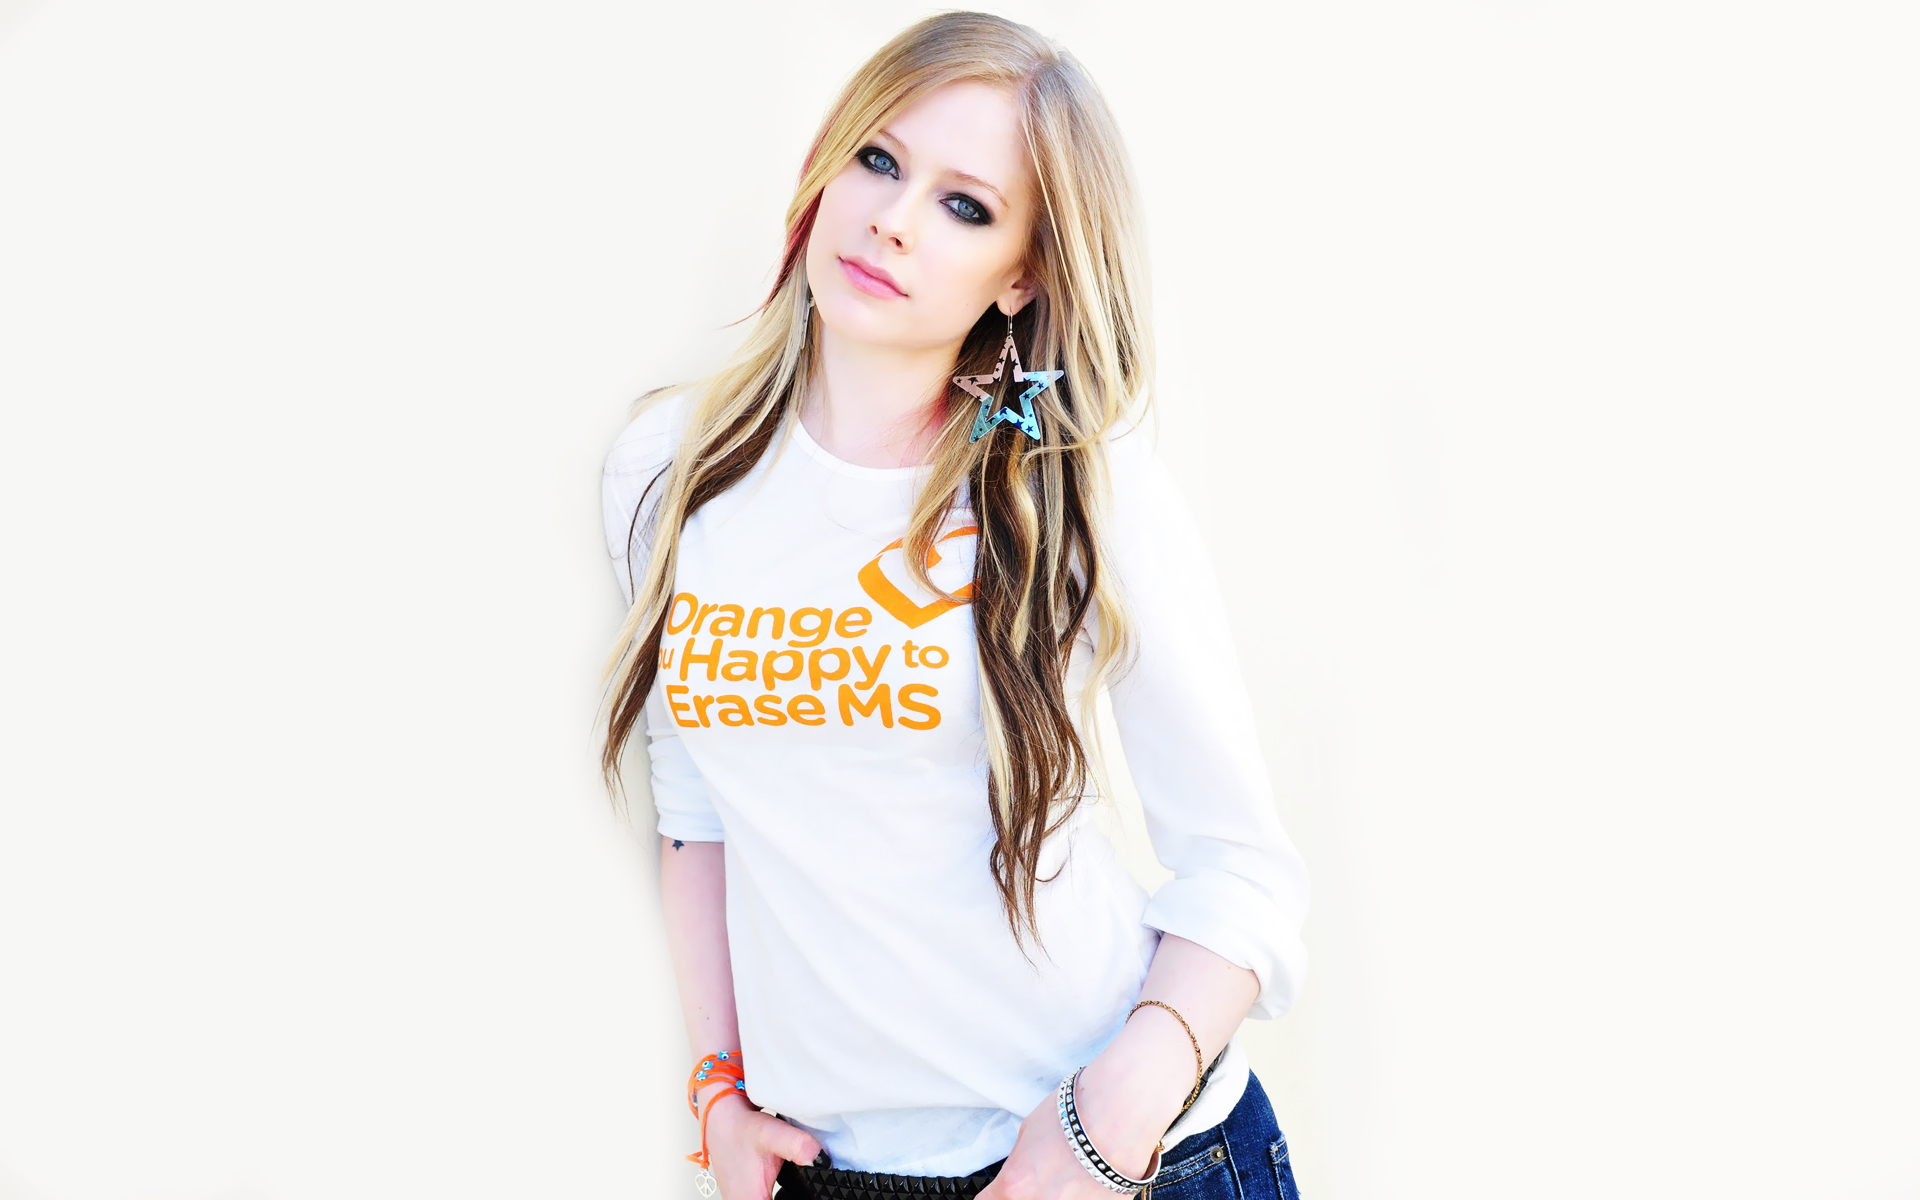 Avril lavigne 2013 wallpapers wallpapers hd avril lavigne 2013 voltagebd Gallery